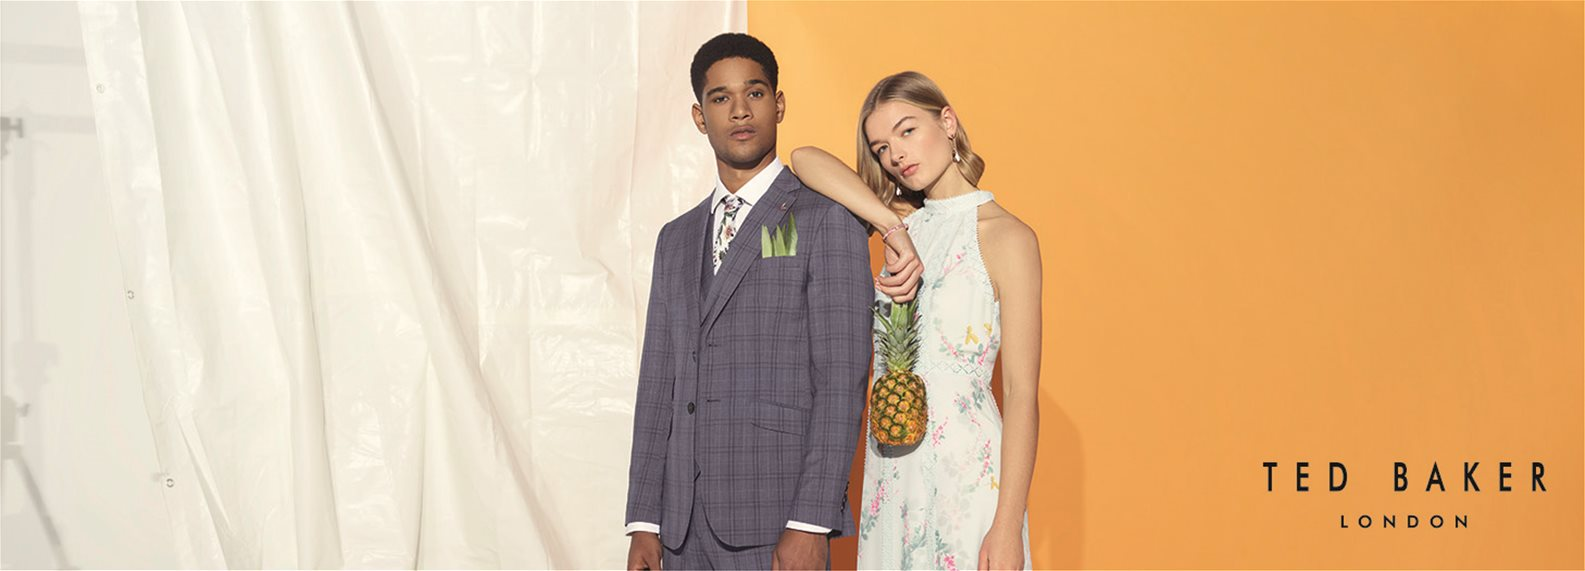 TED BAKER SS19 image